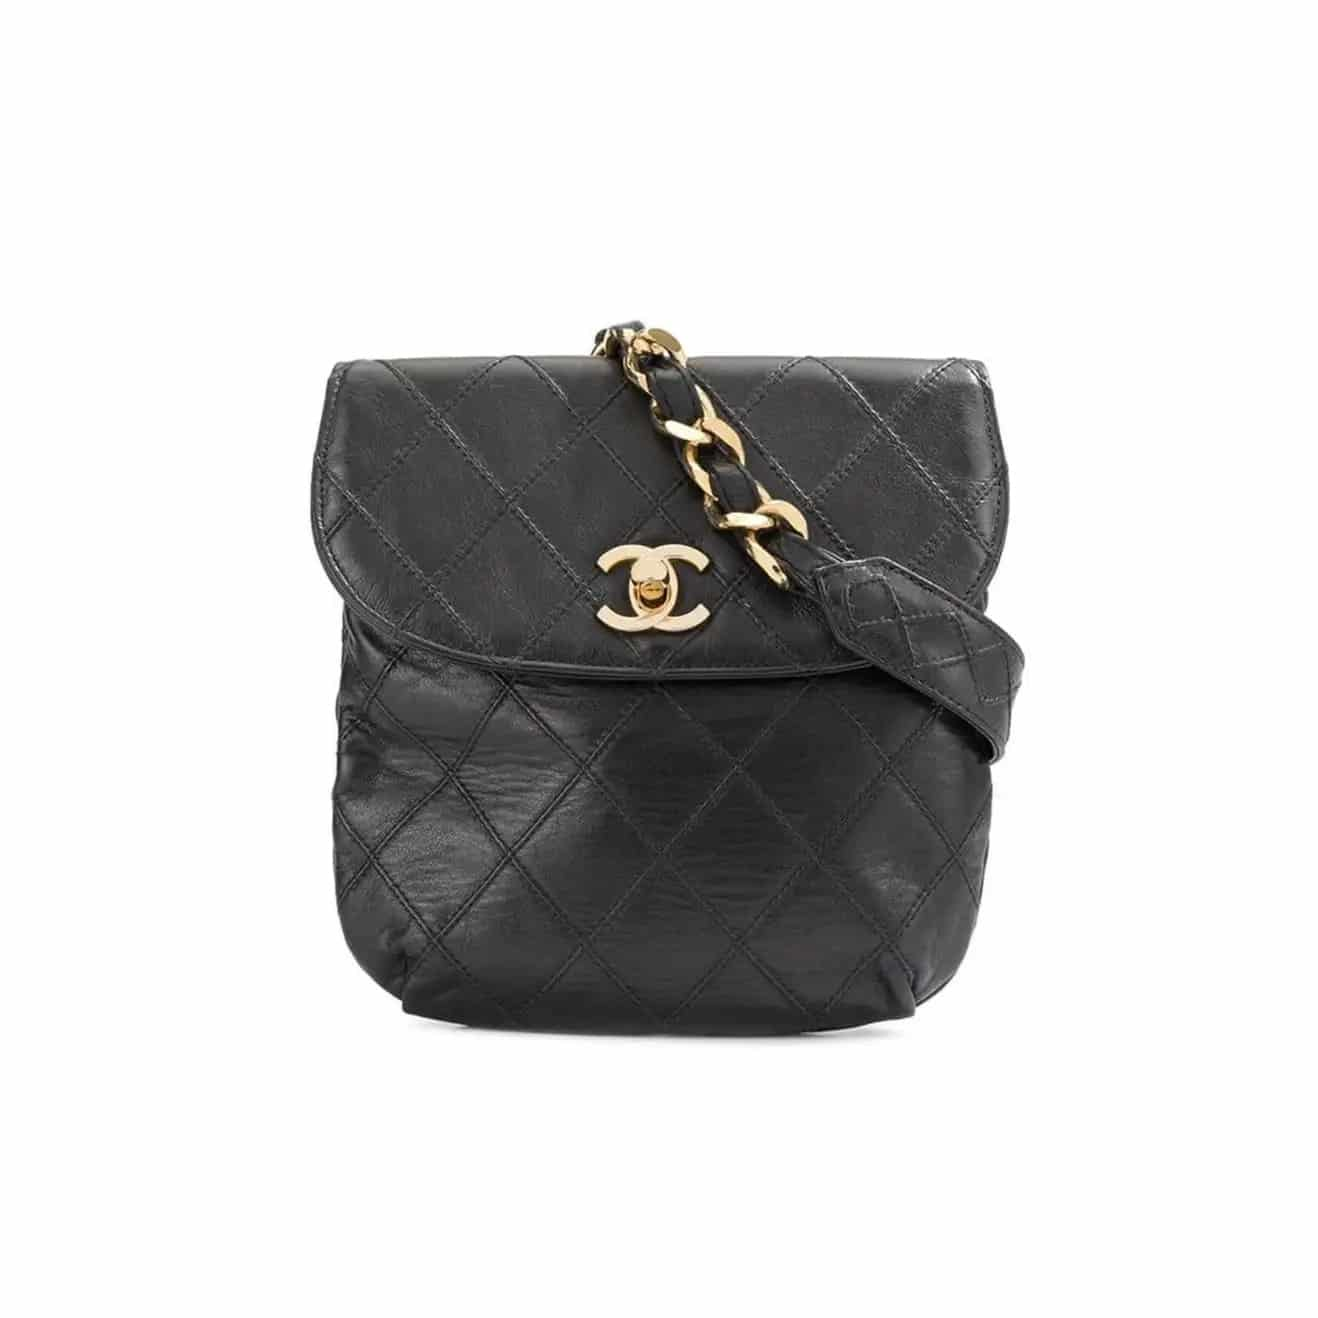 A vintage black quilted-leather Chanel belt bag, offered by House of Carver